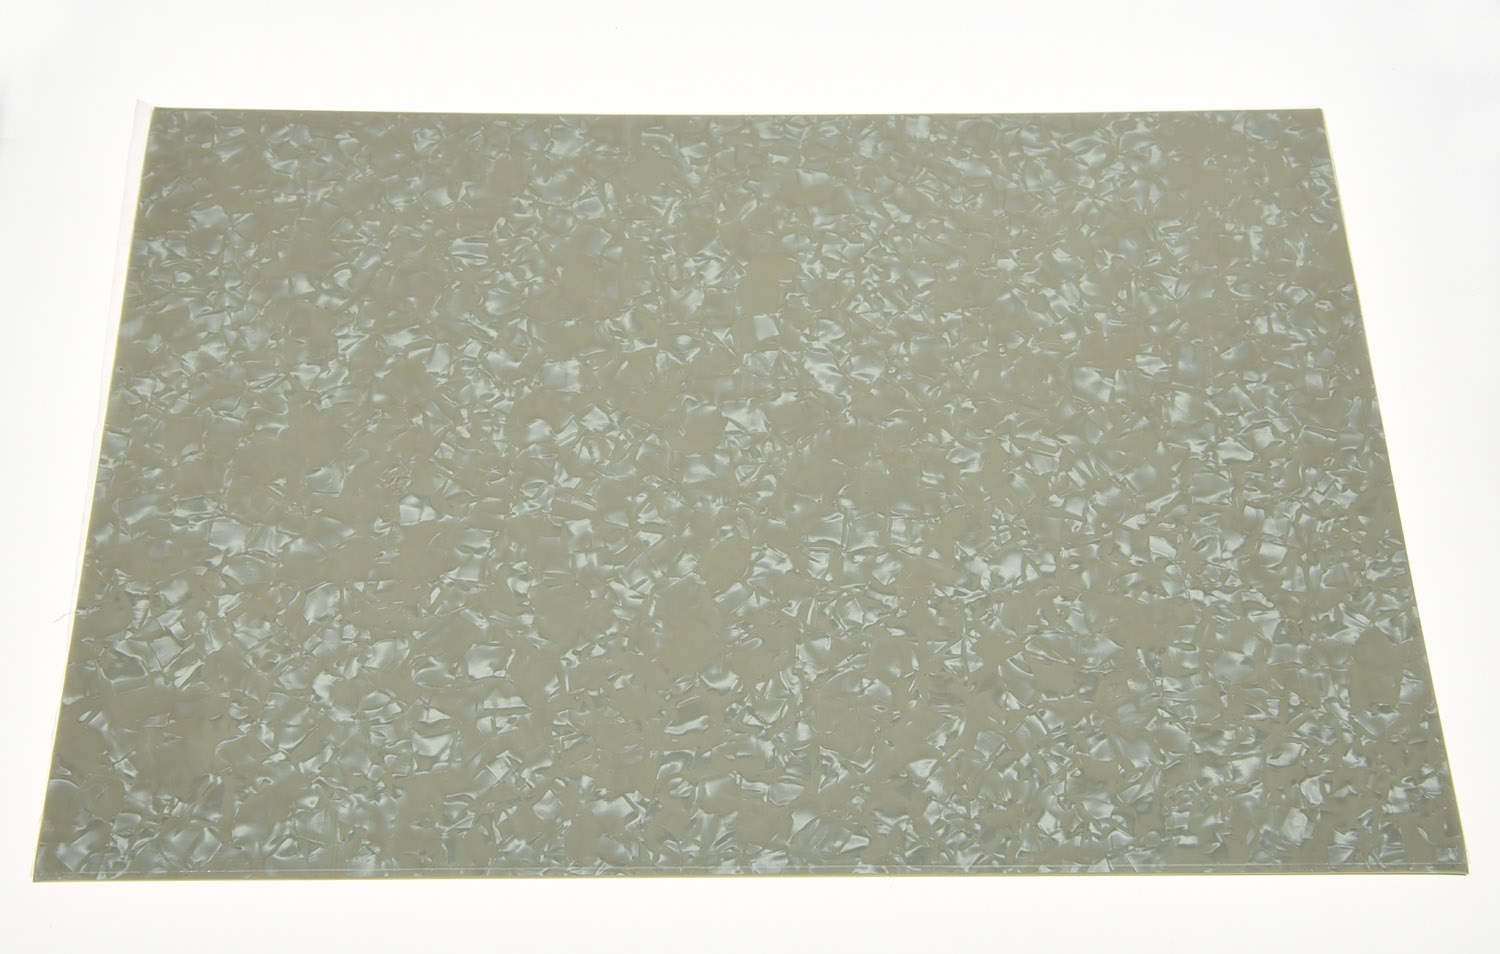 KAISH Aged Pearl 3 Ply Blank Pickguard Scratch Plate Material Sheet 290x430(mm) kaish 2x neck